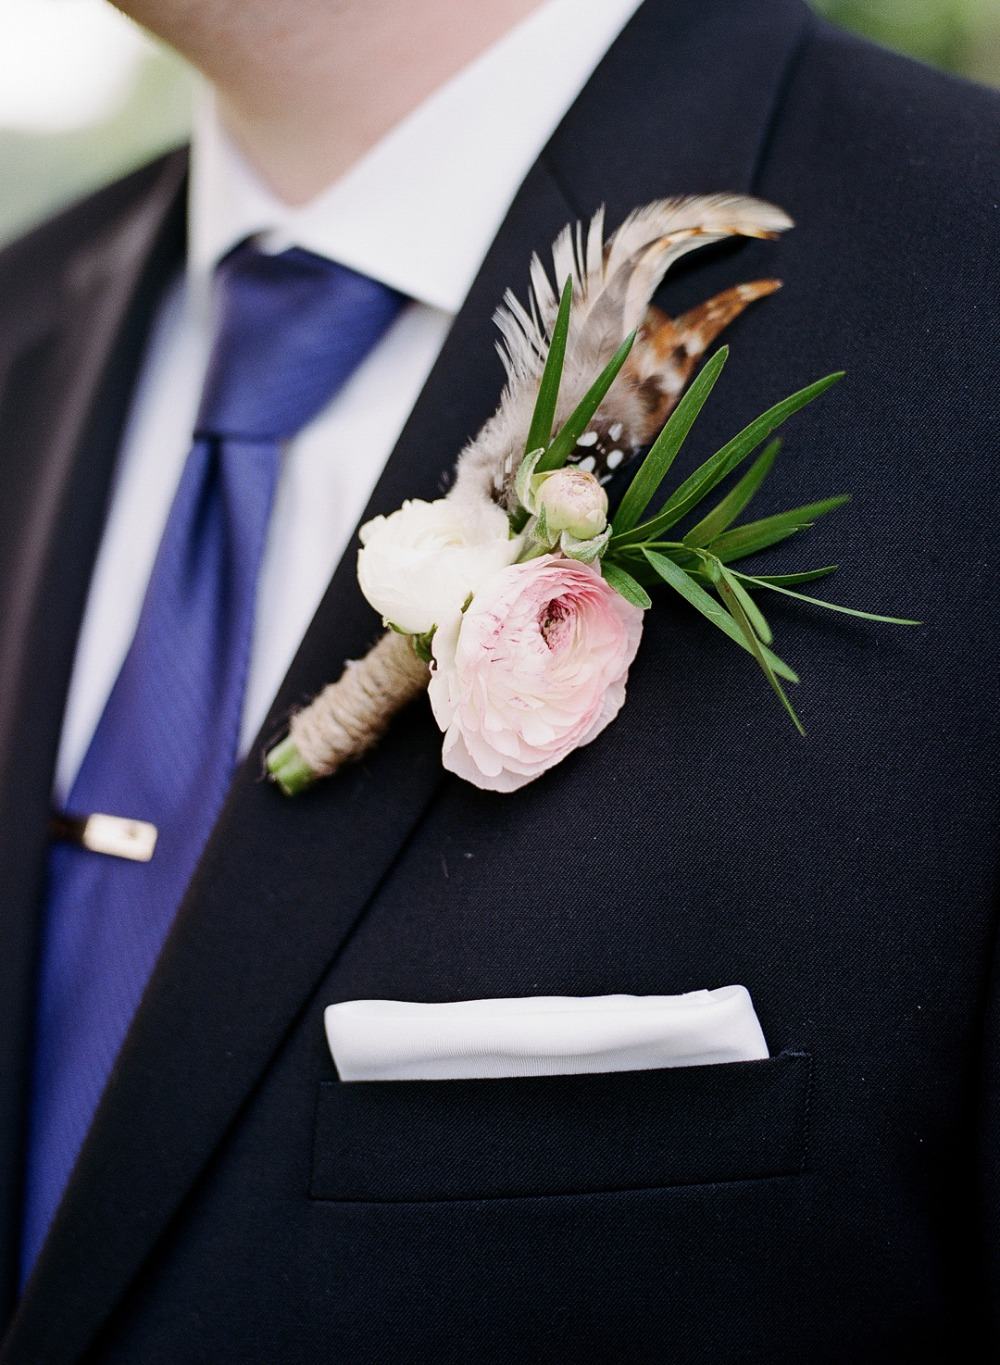 Owl feather boutonniere